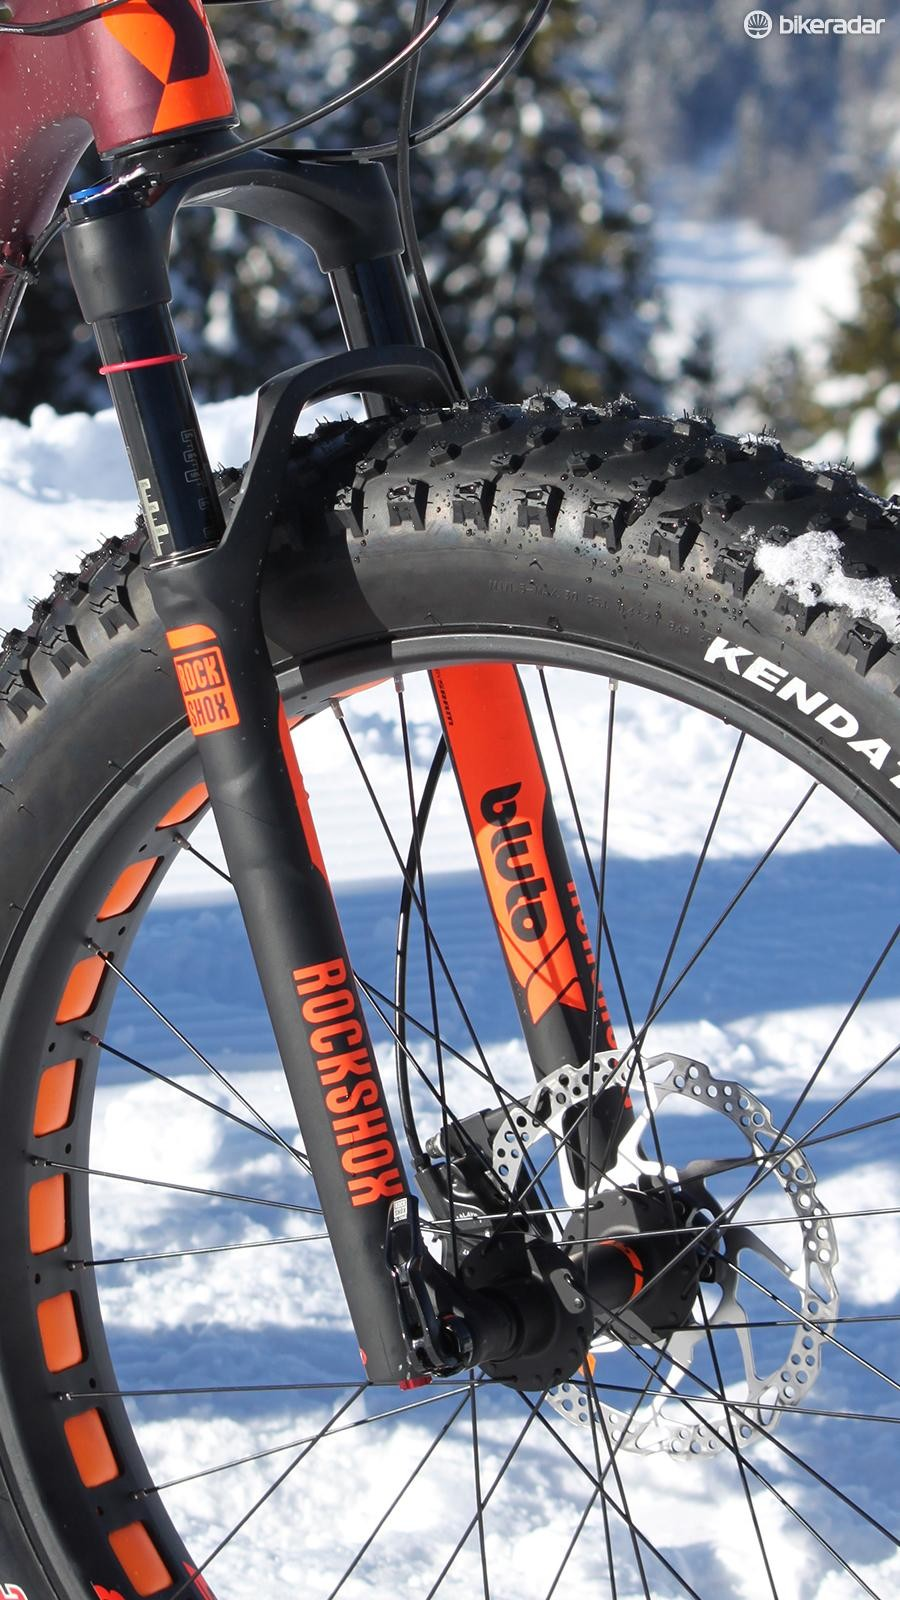 For our snow racing test, we'd have preferred to swap out the Bluto suspension fork for a lighter rigid unit